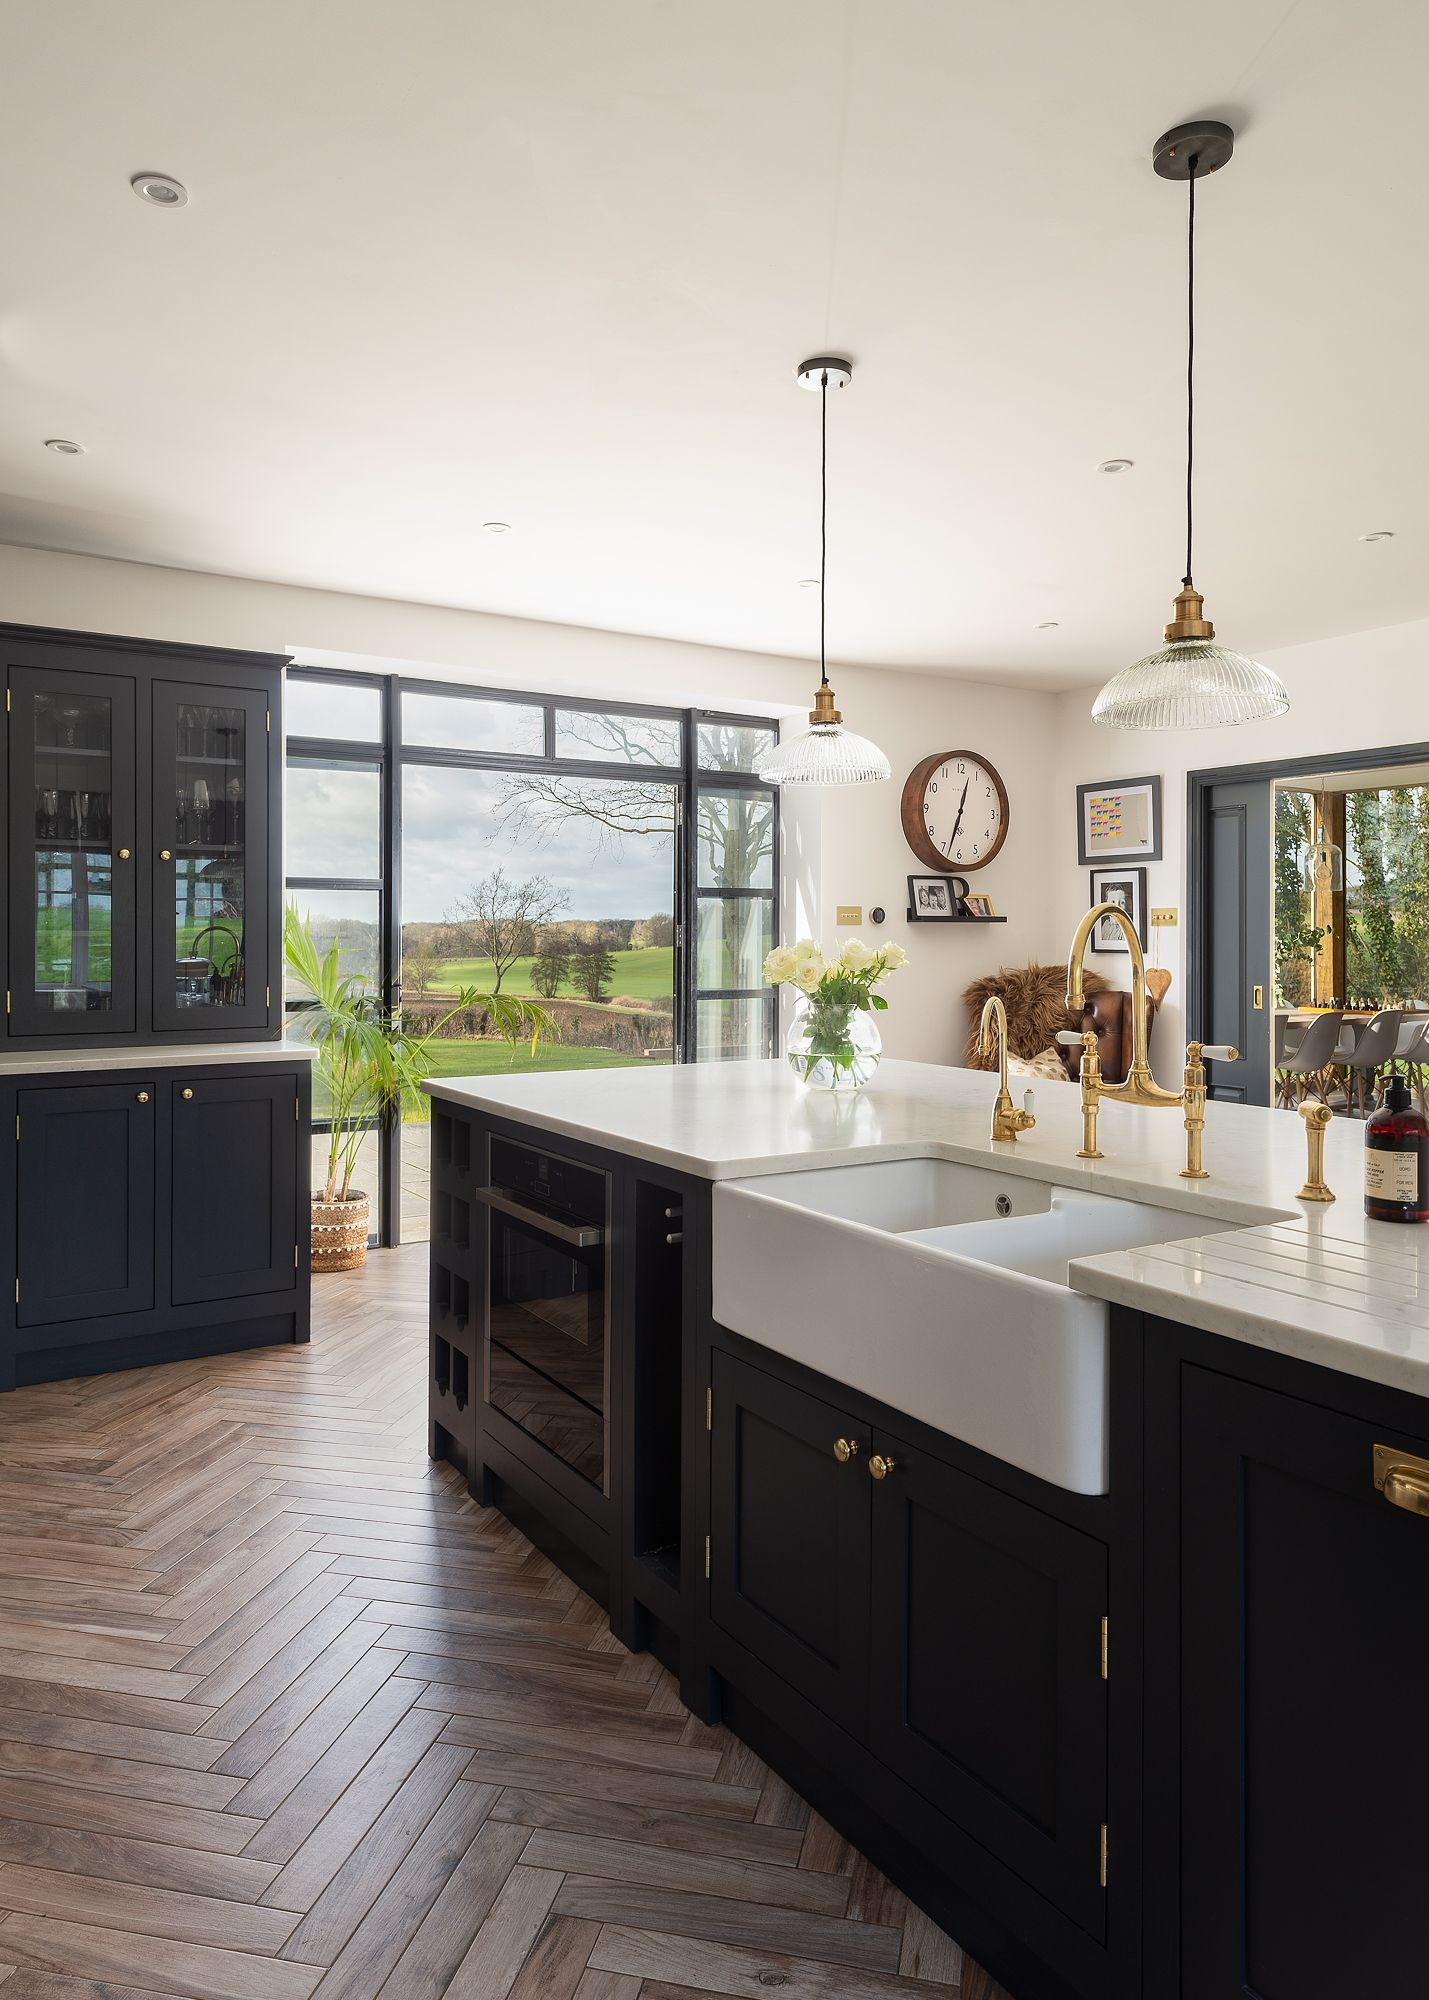 this large kitchen island is multifunctional and houses